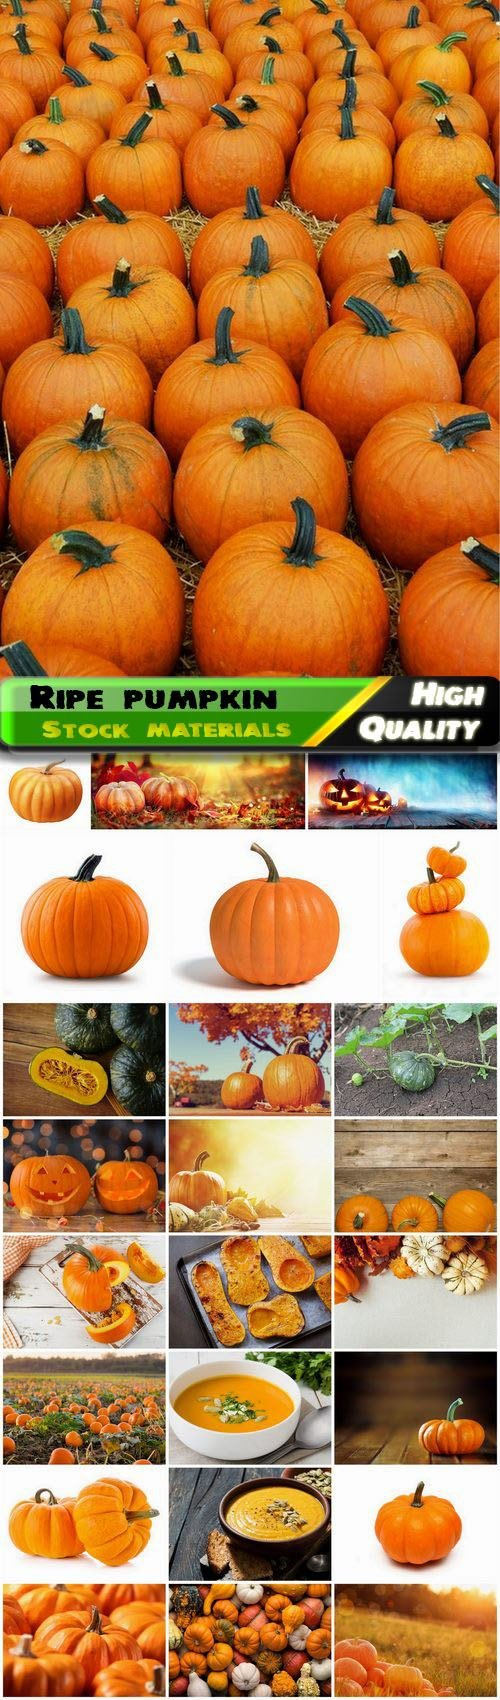 Ripe and green vegetable pumpkin on the field 25 HQ Jpg